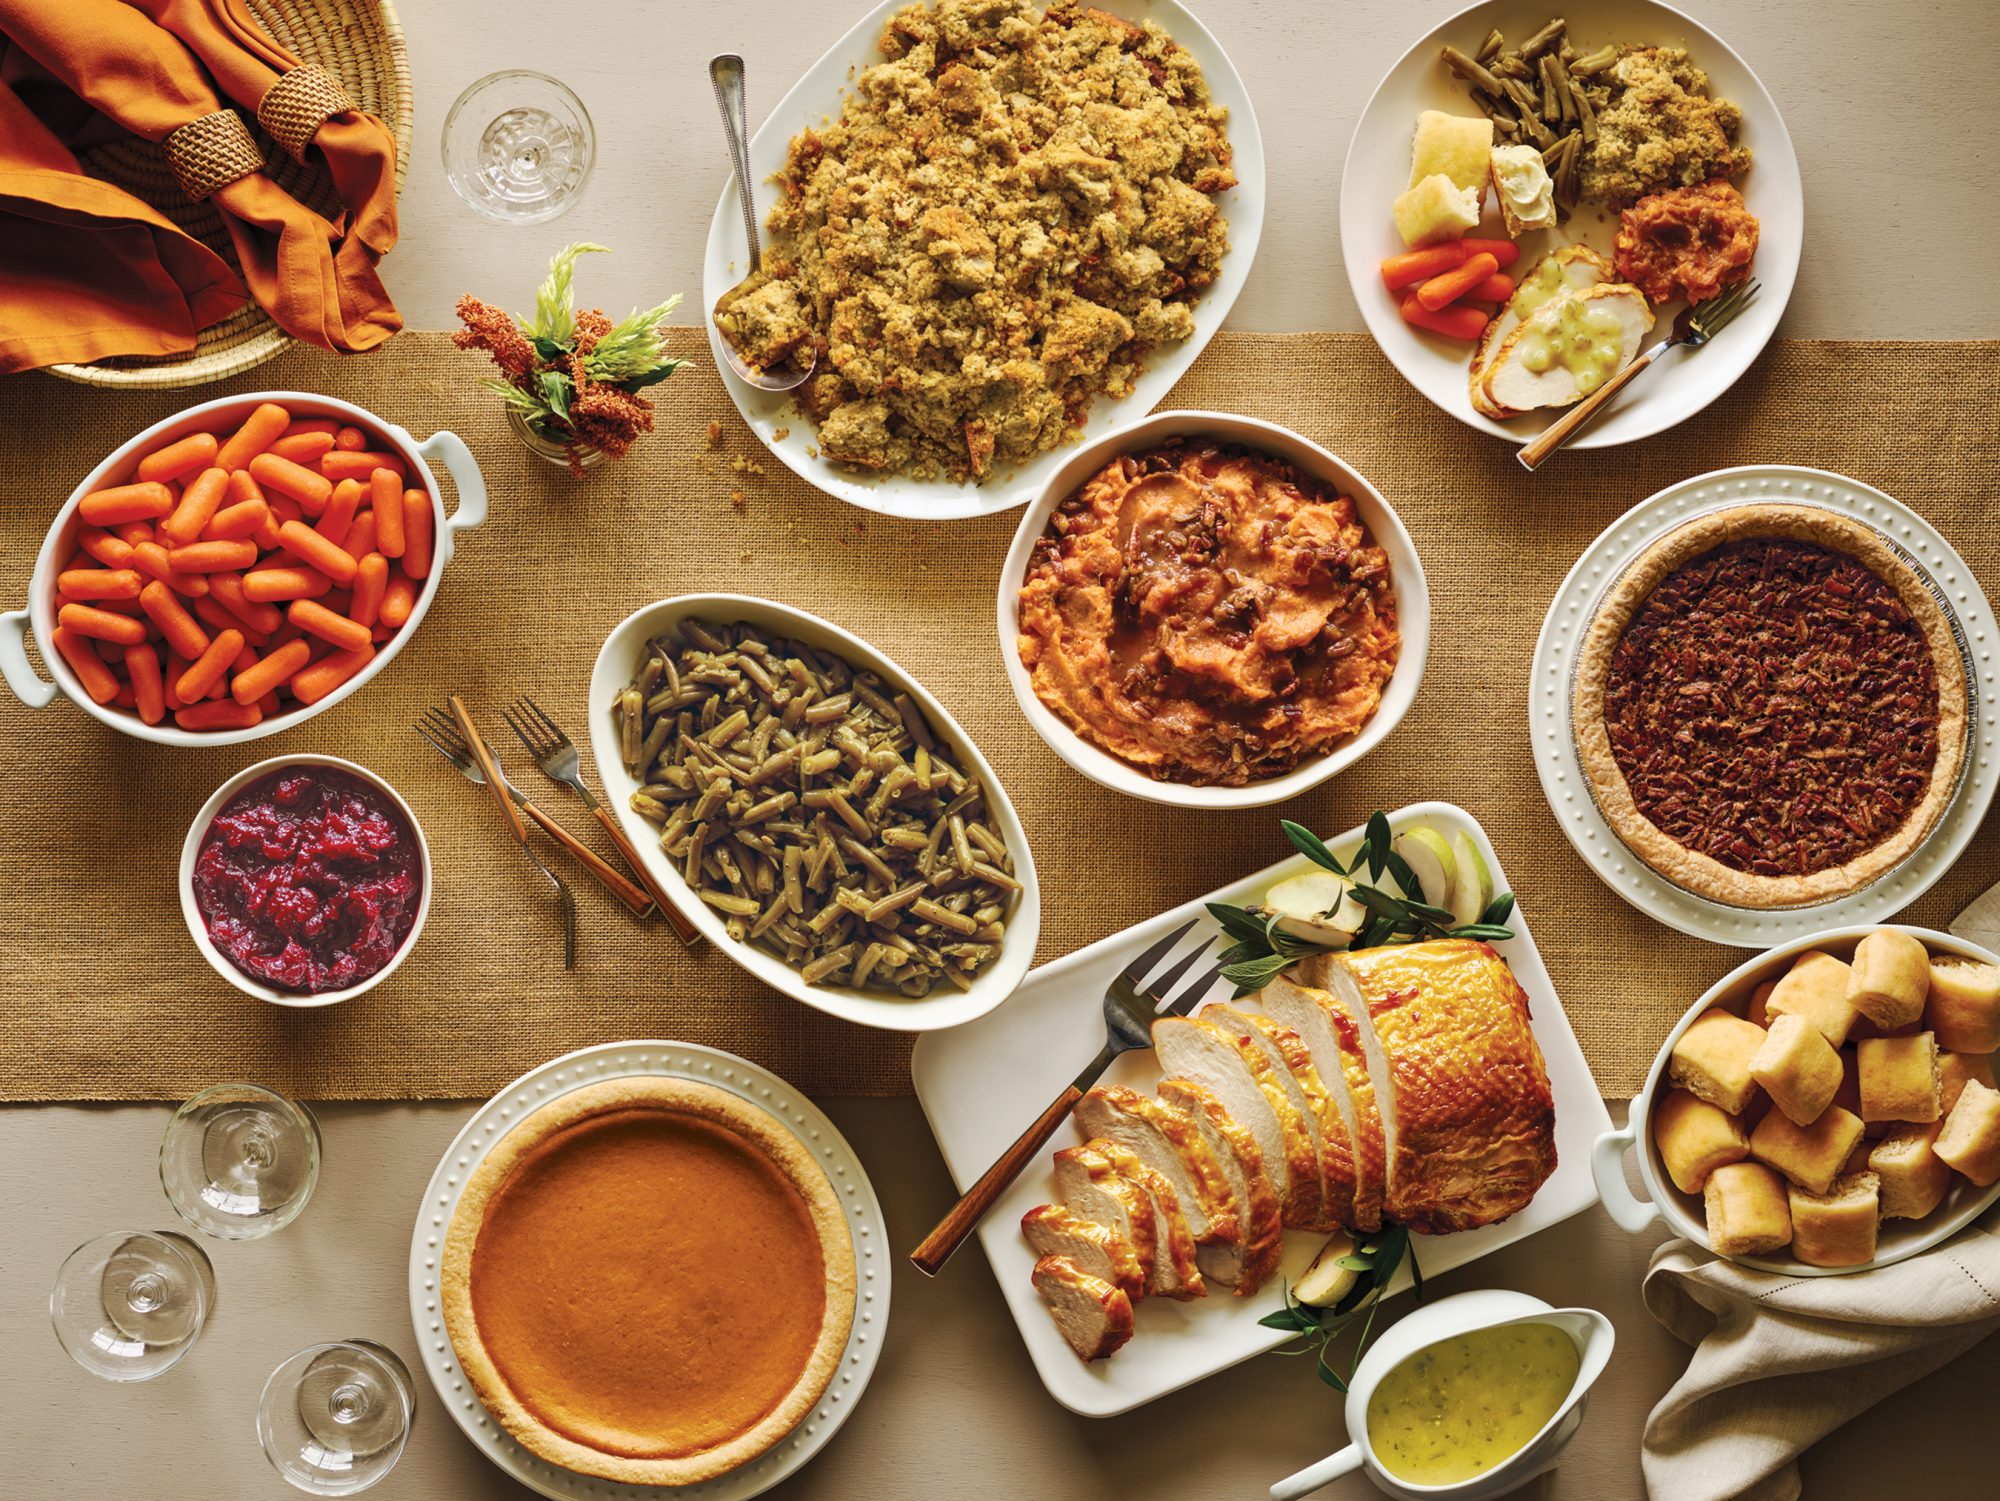 5 Places You Can Pick Up Ready-Made Thanksgiving Dinner